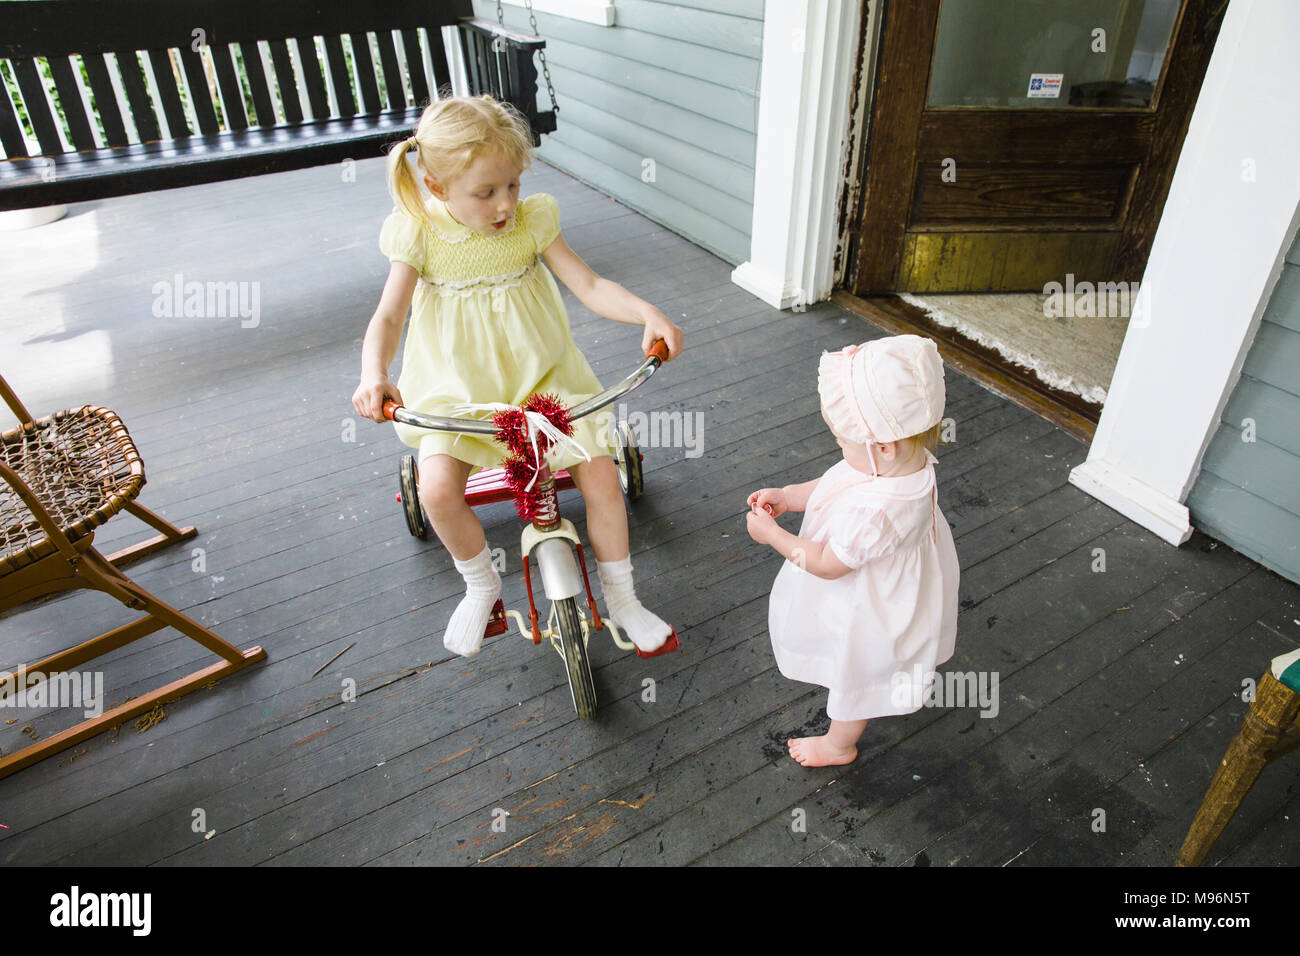 Girl riding red bike next to baby on porch - Stock Image